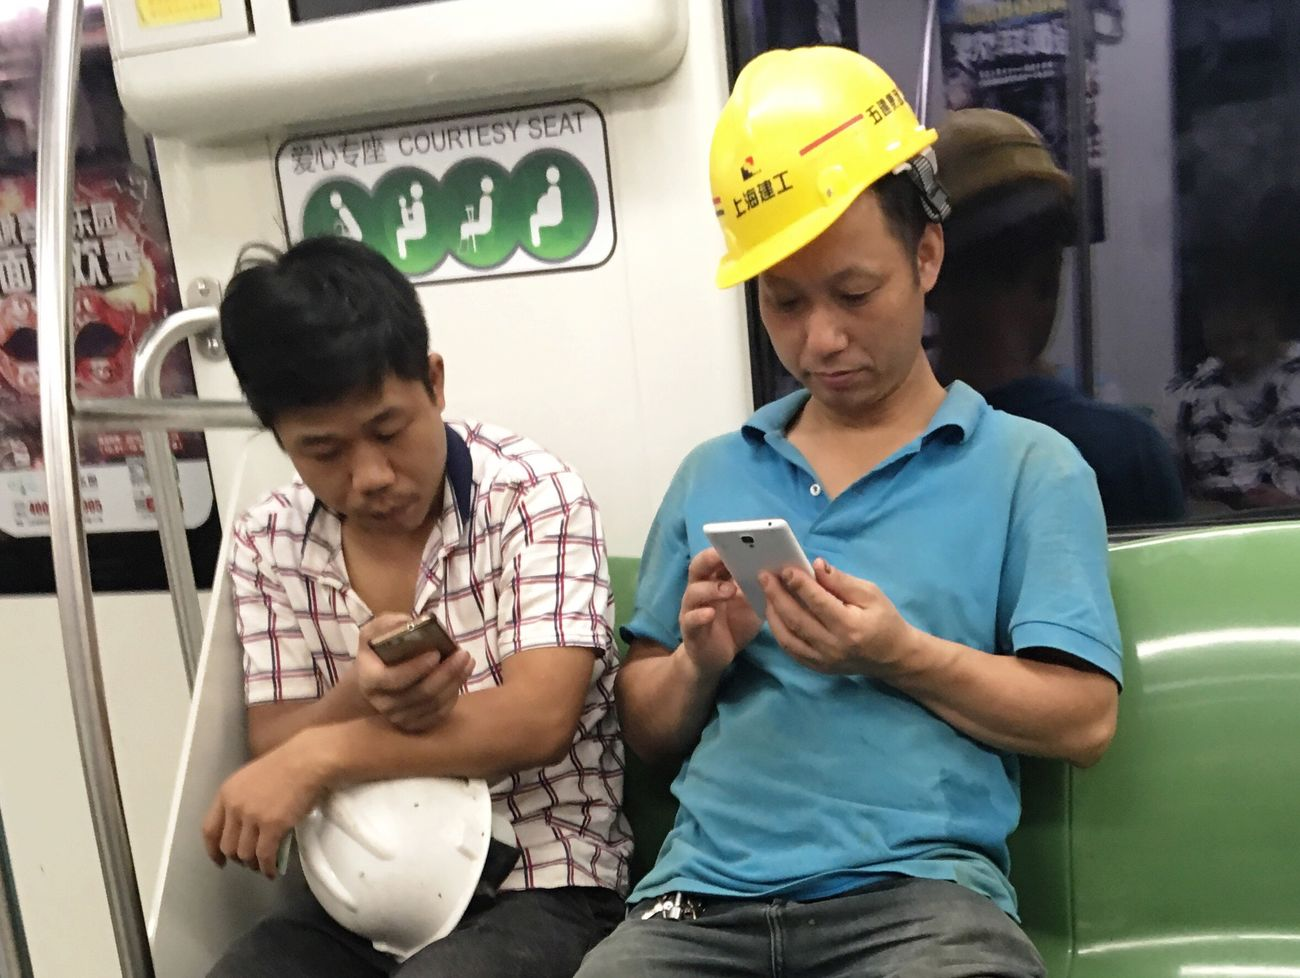 Shanghai metro Communication Real People Leisure Activity Two People Lifestyles Men Day Outdoors Adult People Mobile Conversations Technology Shanghai People Photography People Watching People And Places Transportation Vehicle Train Commuting My Daily Commute